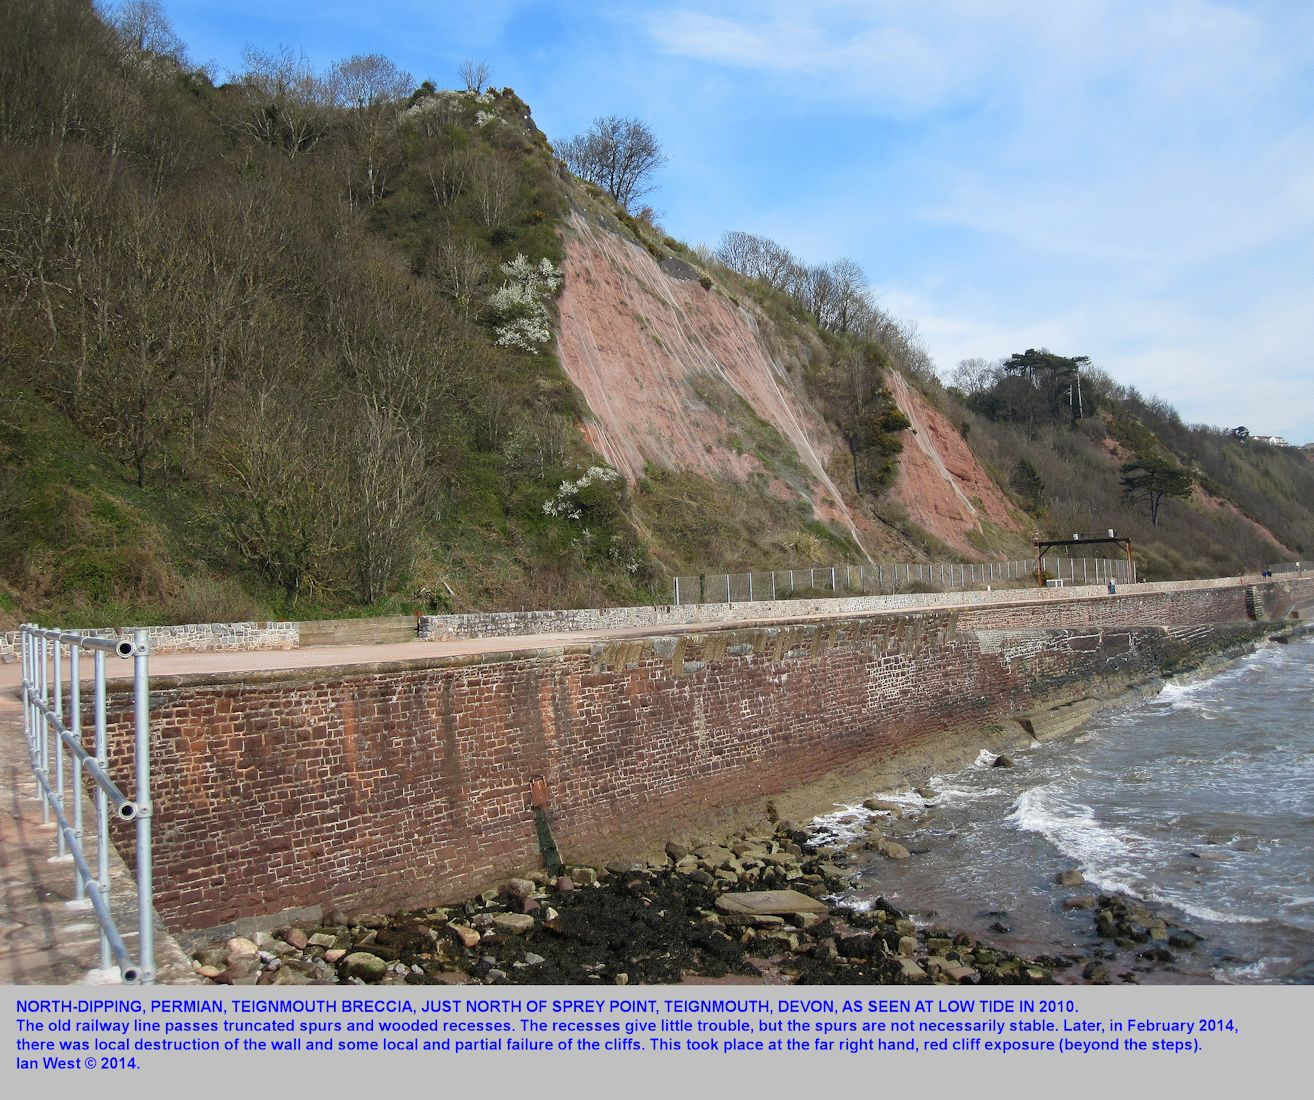 Cliffs of Teignmouth Breccia at the back of the railway line, just north of Sprey Point, between Teignmouth and Dawlish, Devon, photograph 2010